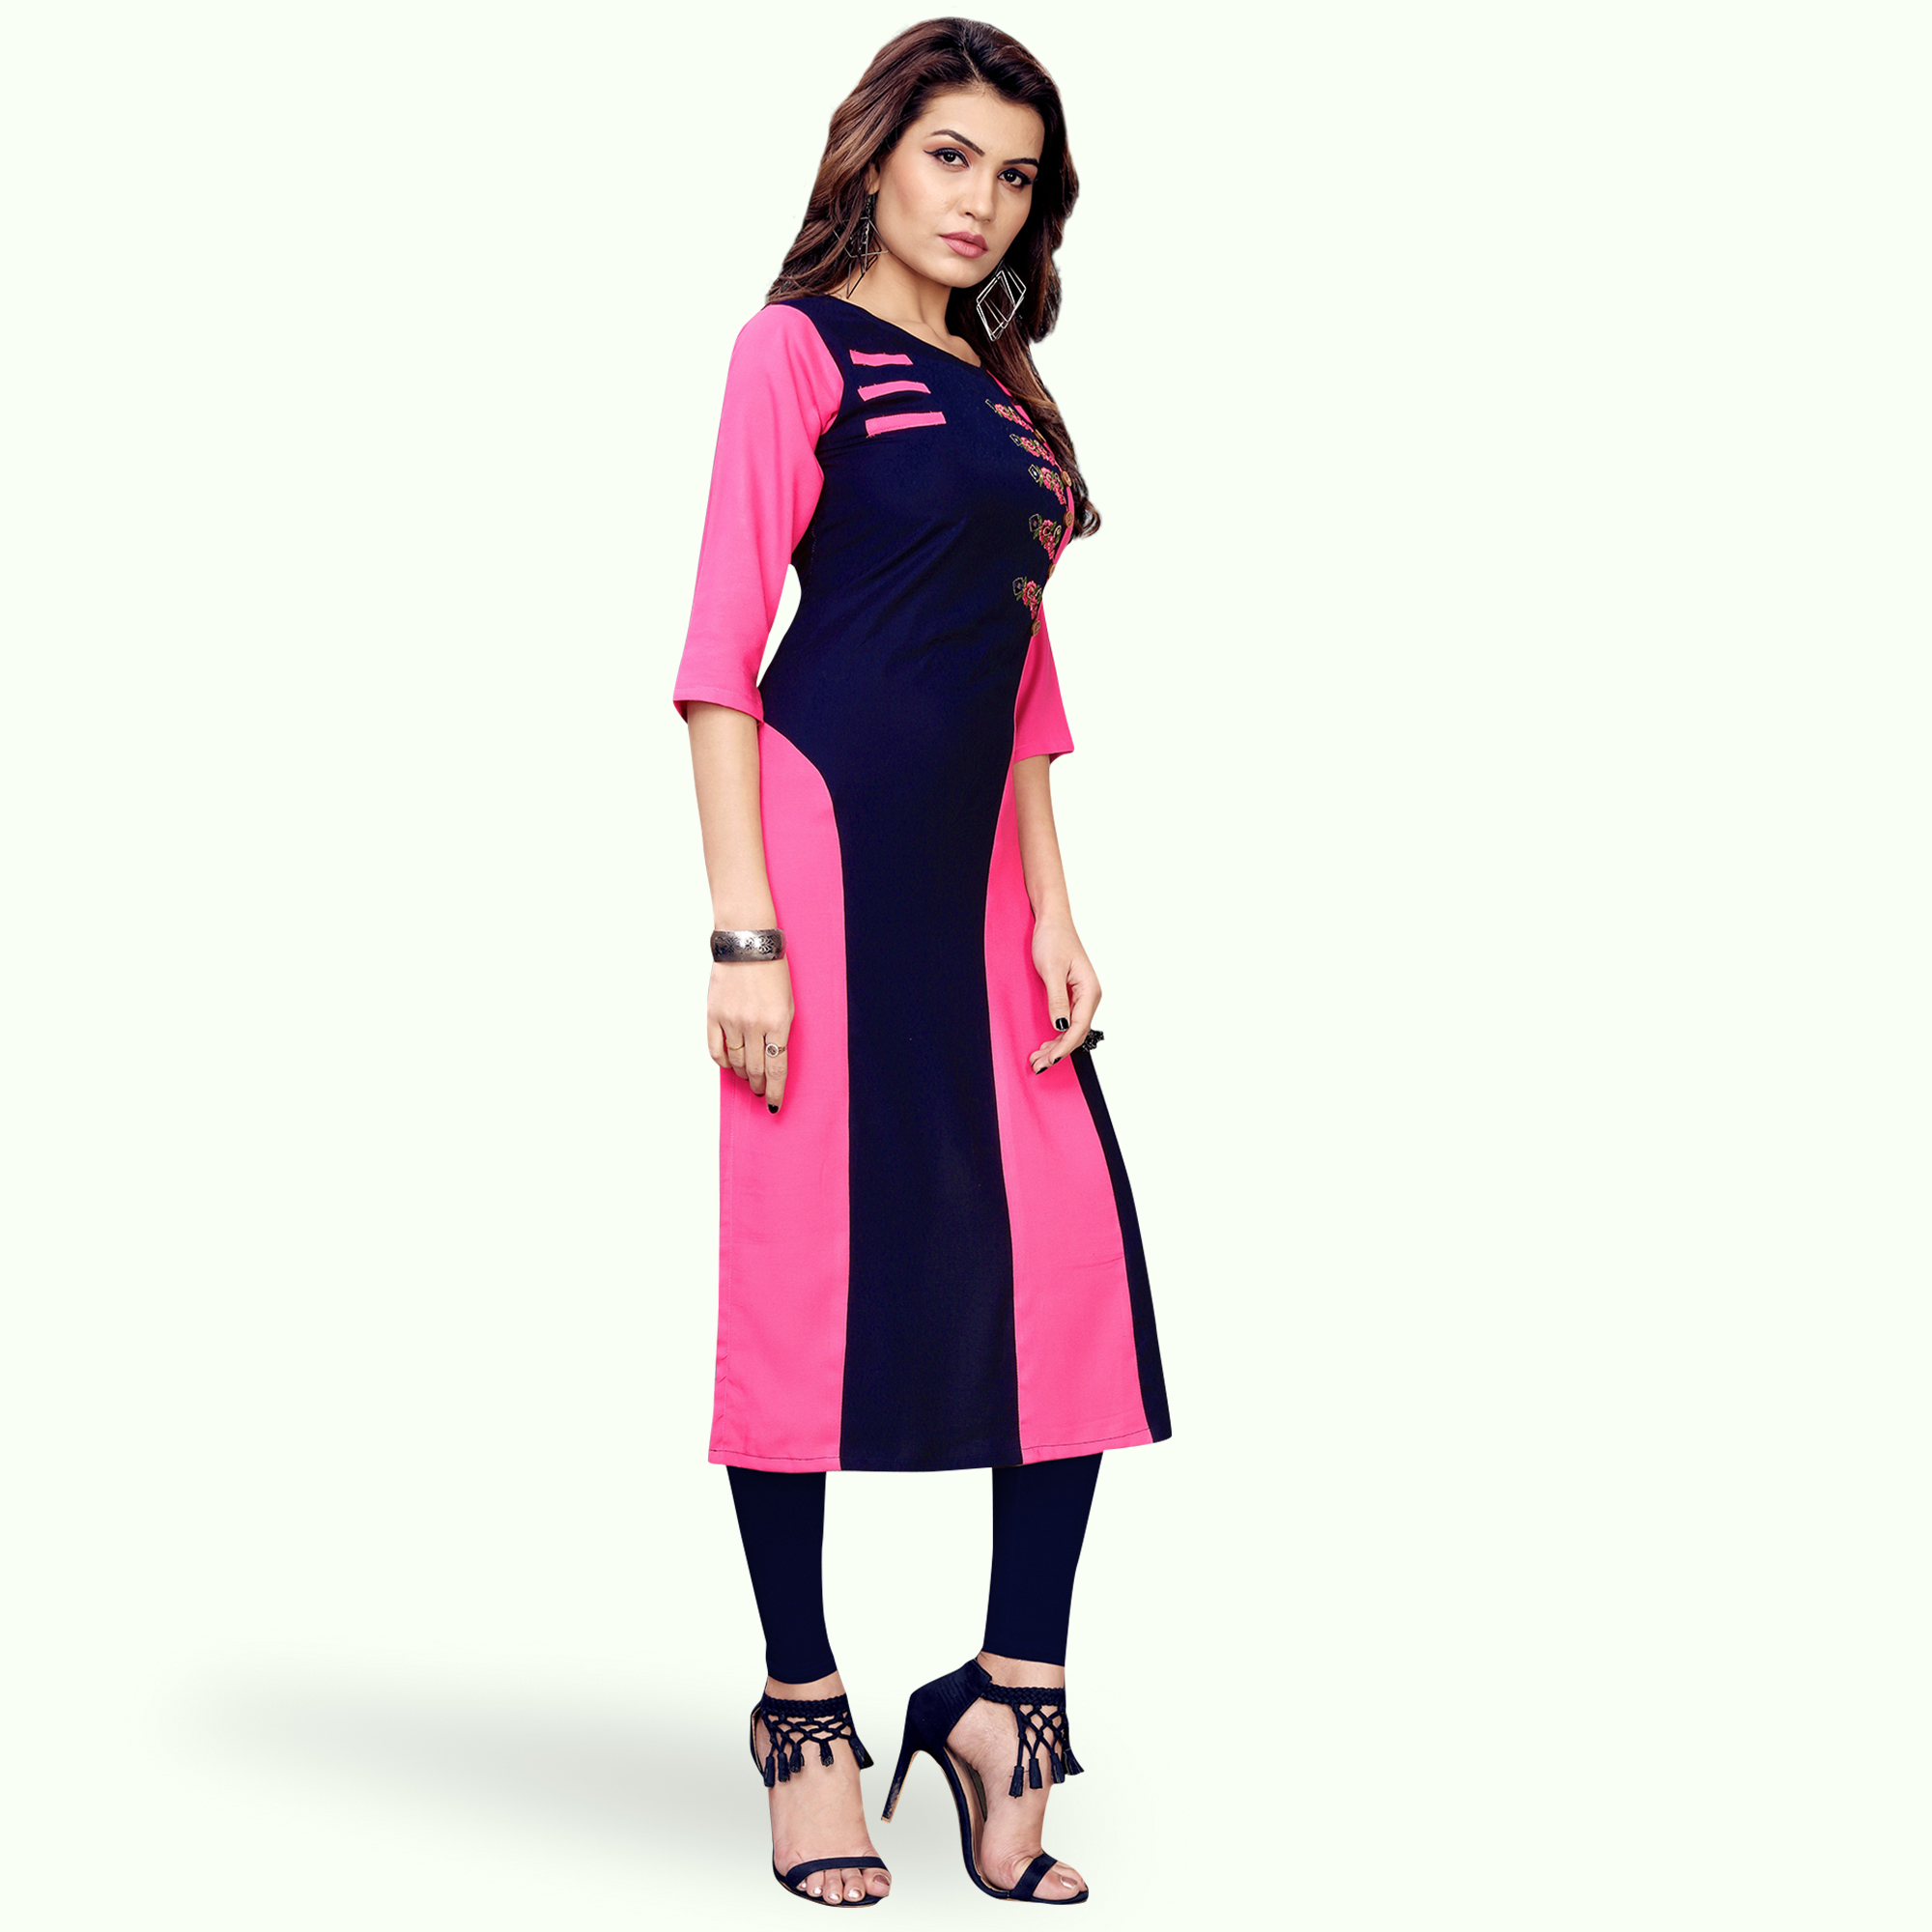 Sensational Pink-Navy Blue Colored Partywear Embroidered Rayon Kurti